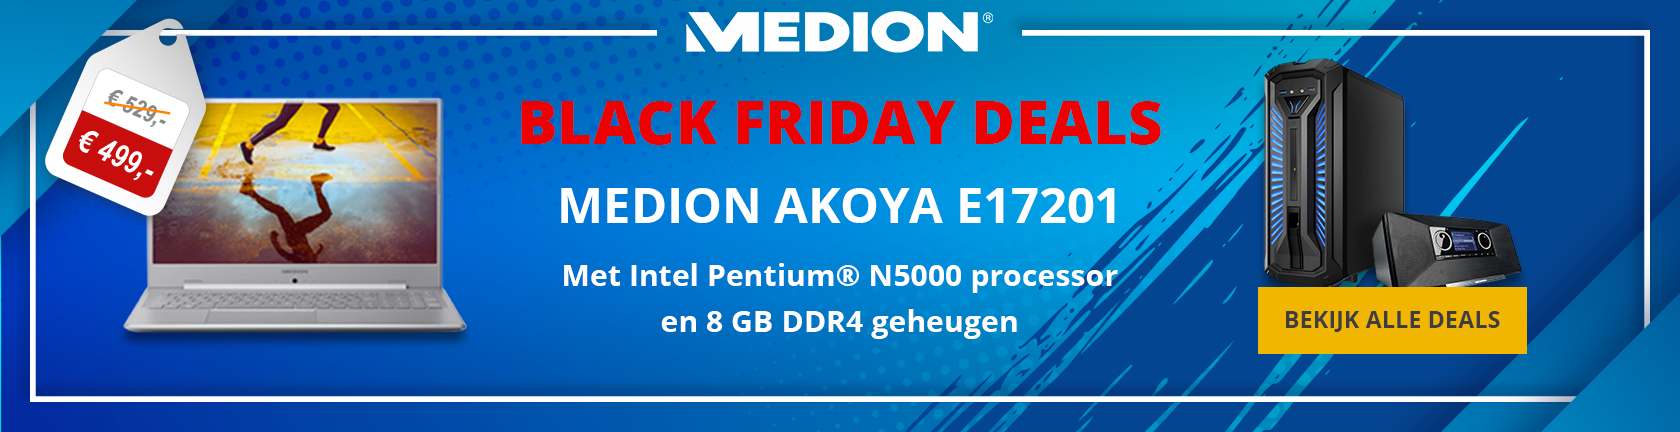 Medion Black Friday deals Medion  Akoya E17201